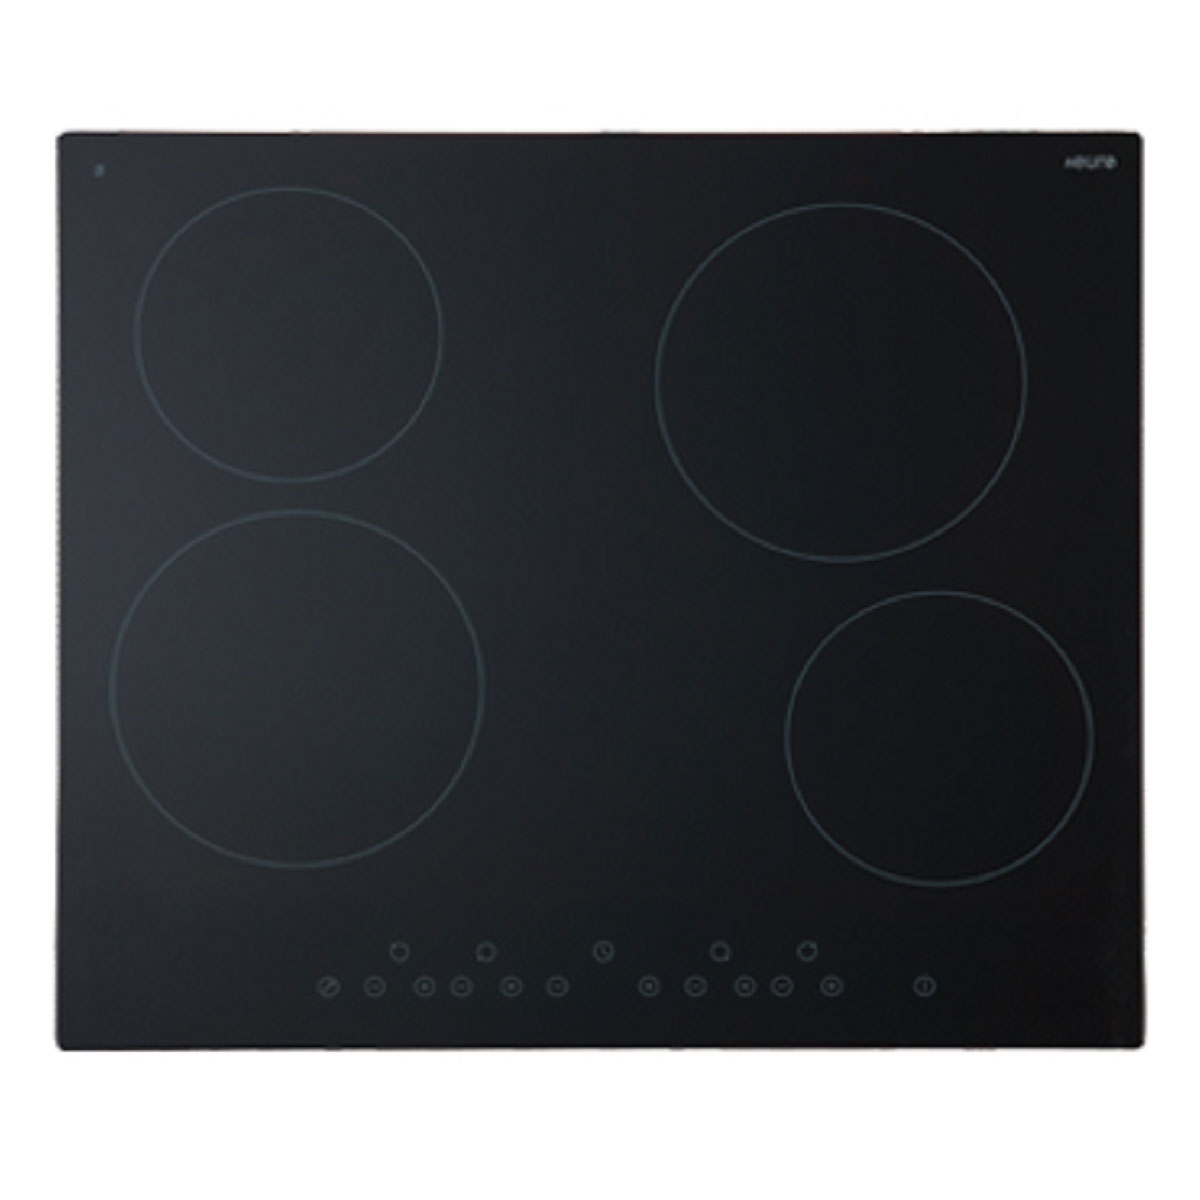 Euro Appliances EN600C4 60cm Ceramic Cooktop 26505